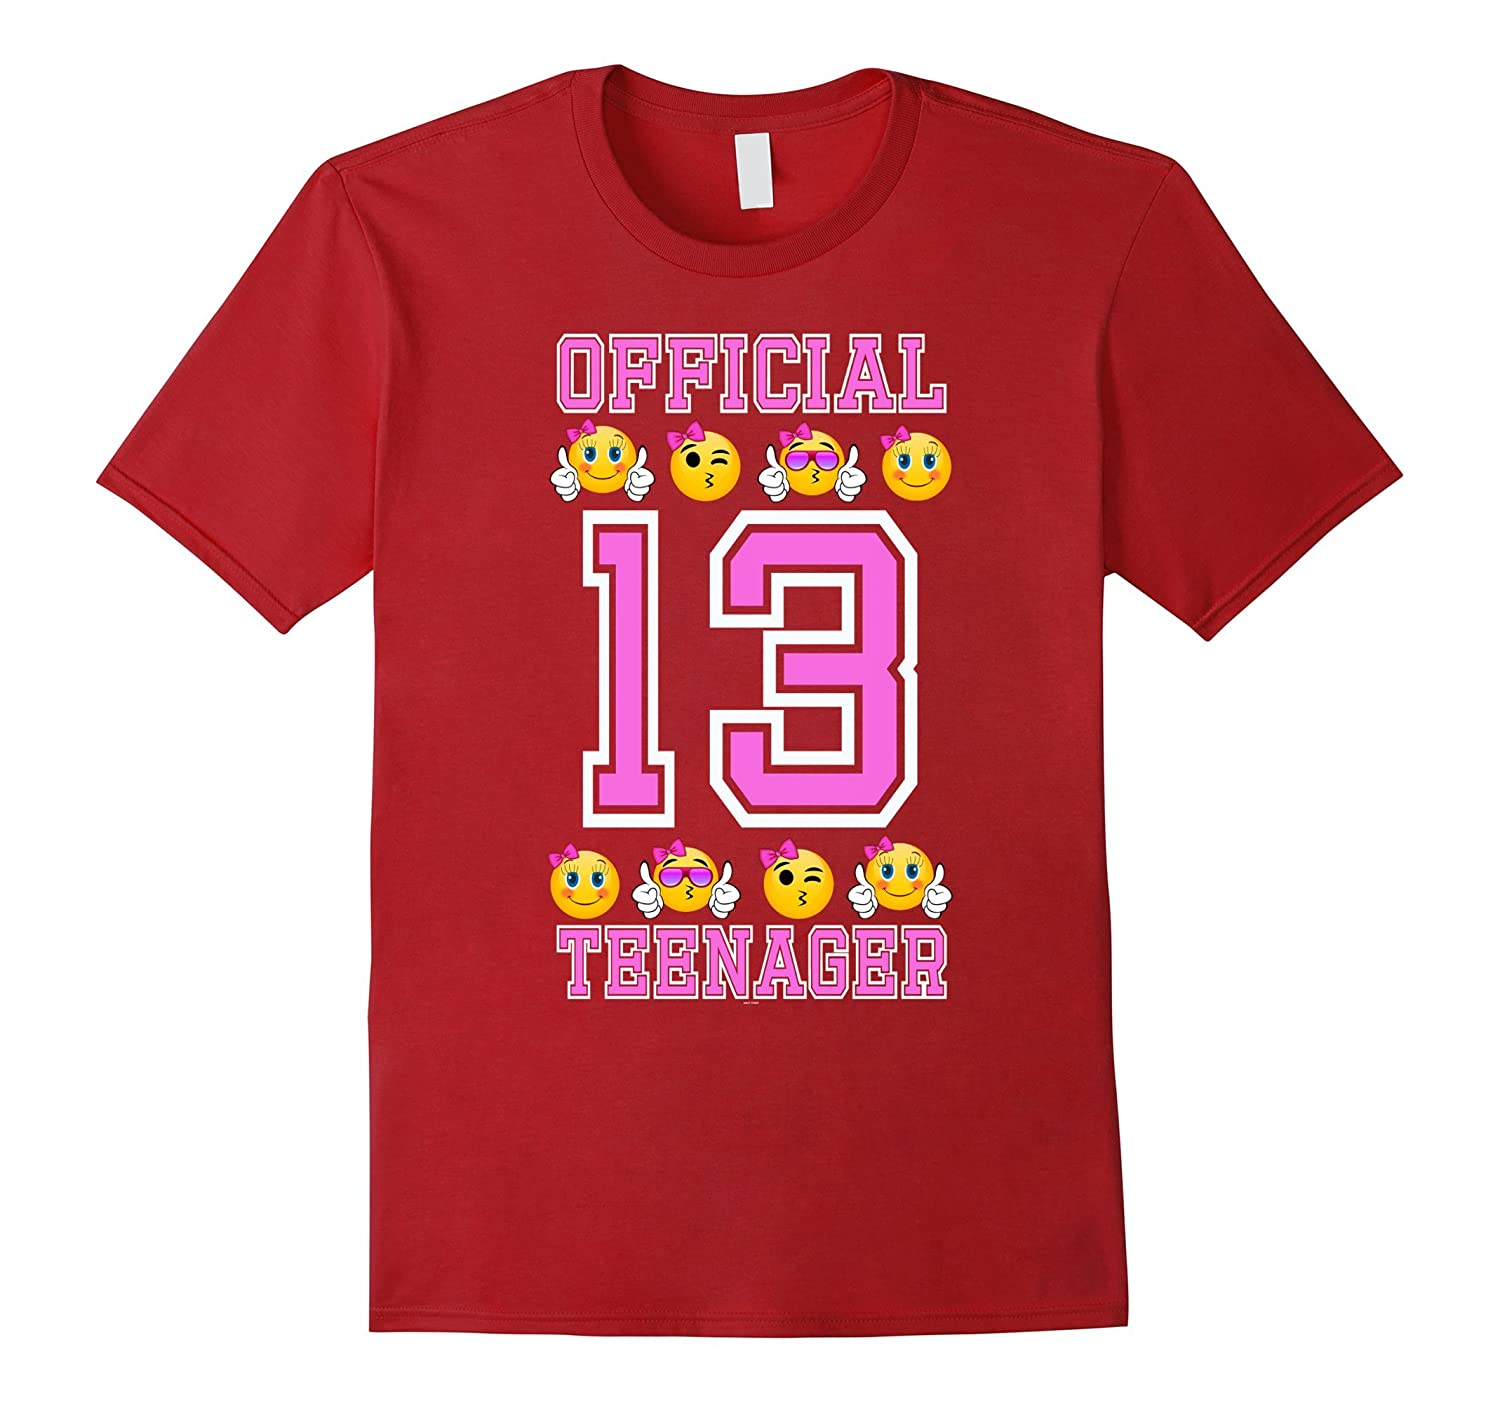 Emoji 13th Birthday Gifts For Teenagers Age 13 Girls Tee RT